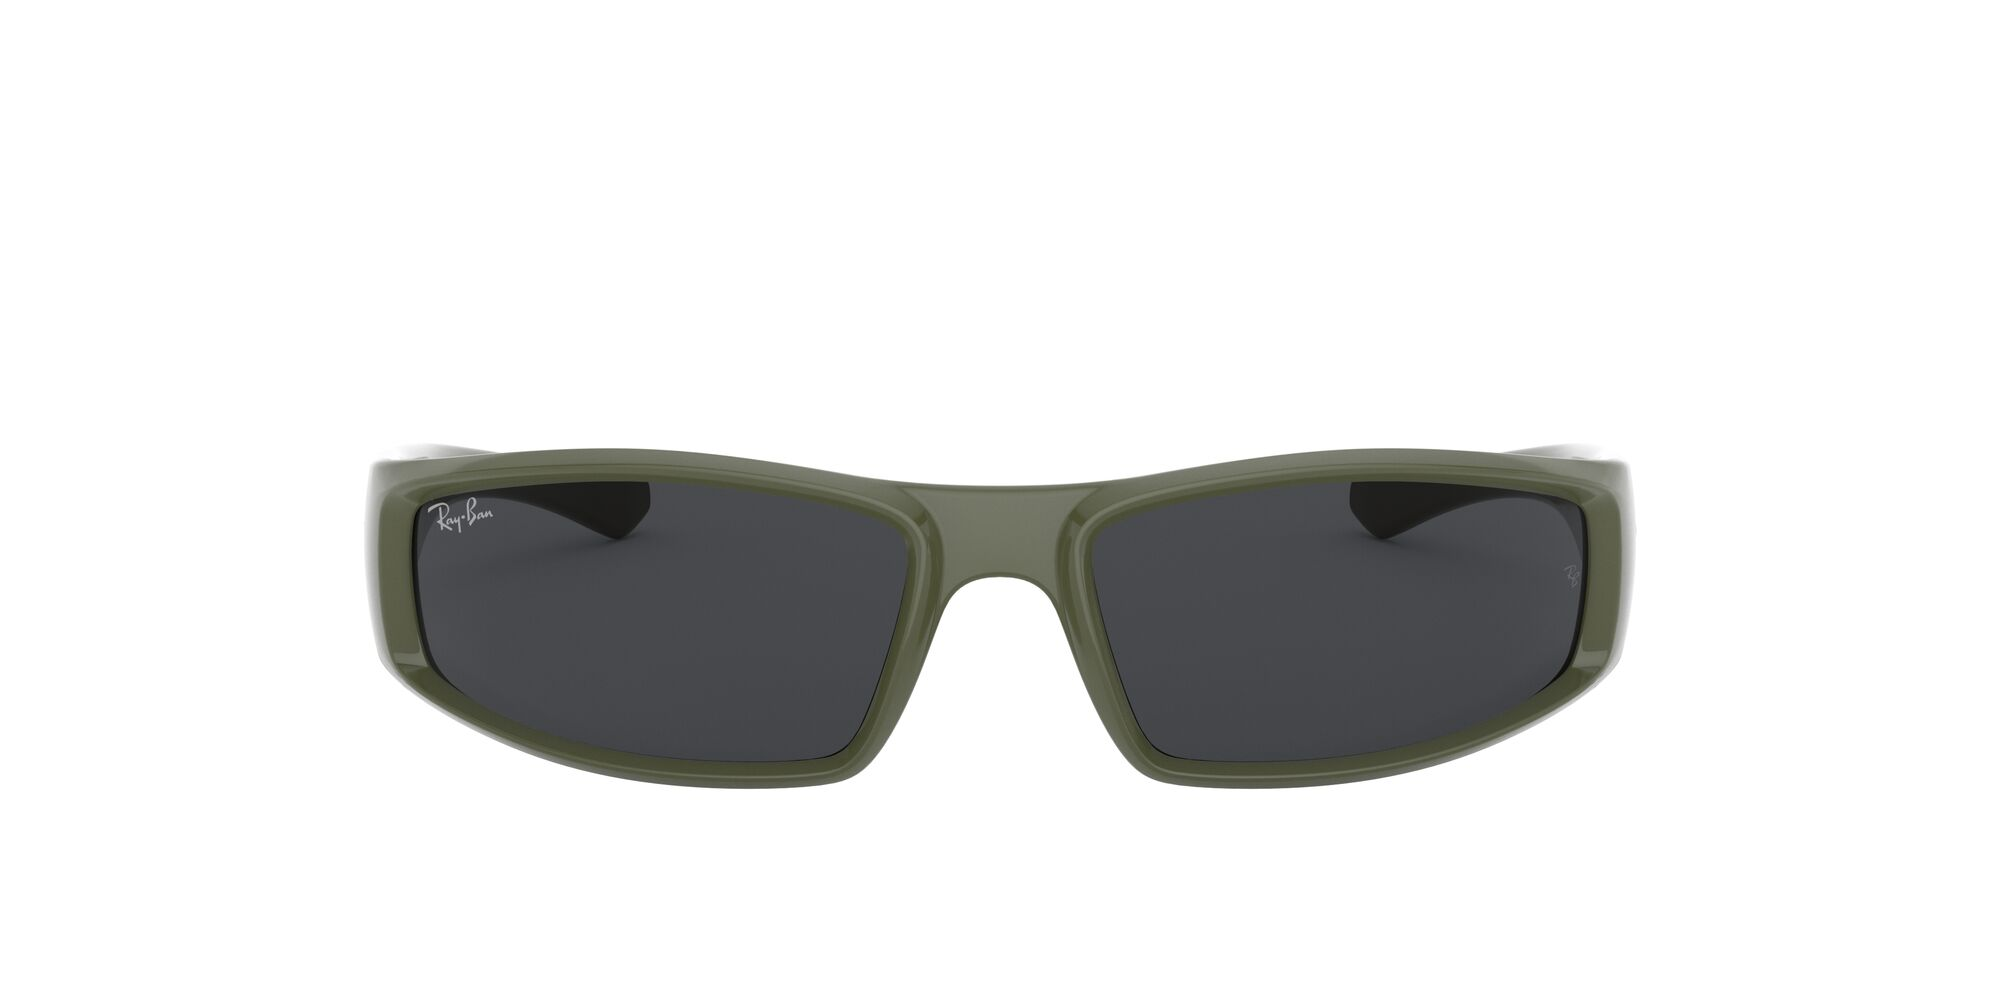 Front Ray-Ban Ray-Ban 0RB4335 648987 58/17 Groen/Grijs